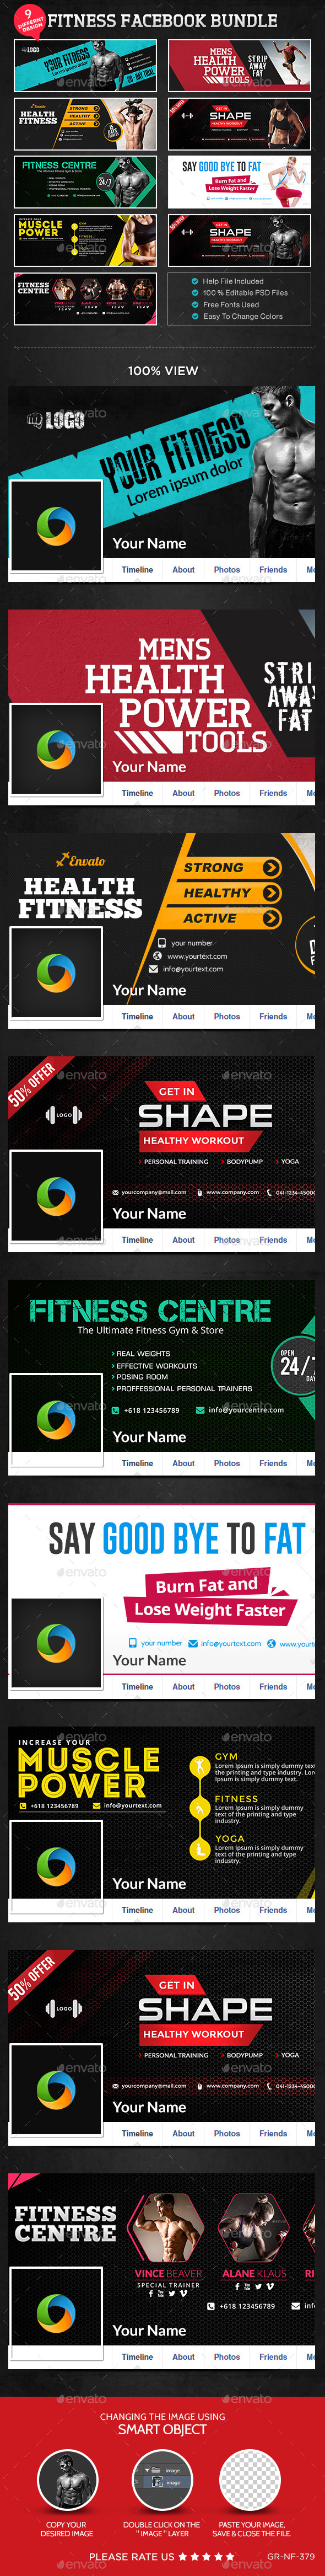 GraphicRiver Fitness FB Bundle 9 Designs 11448803